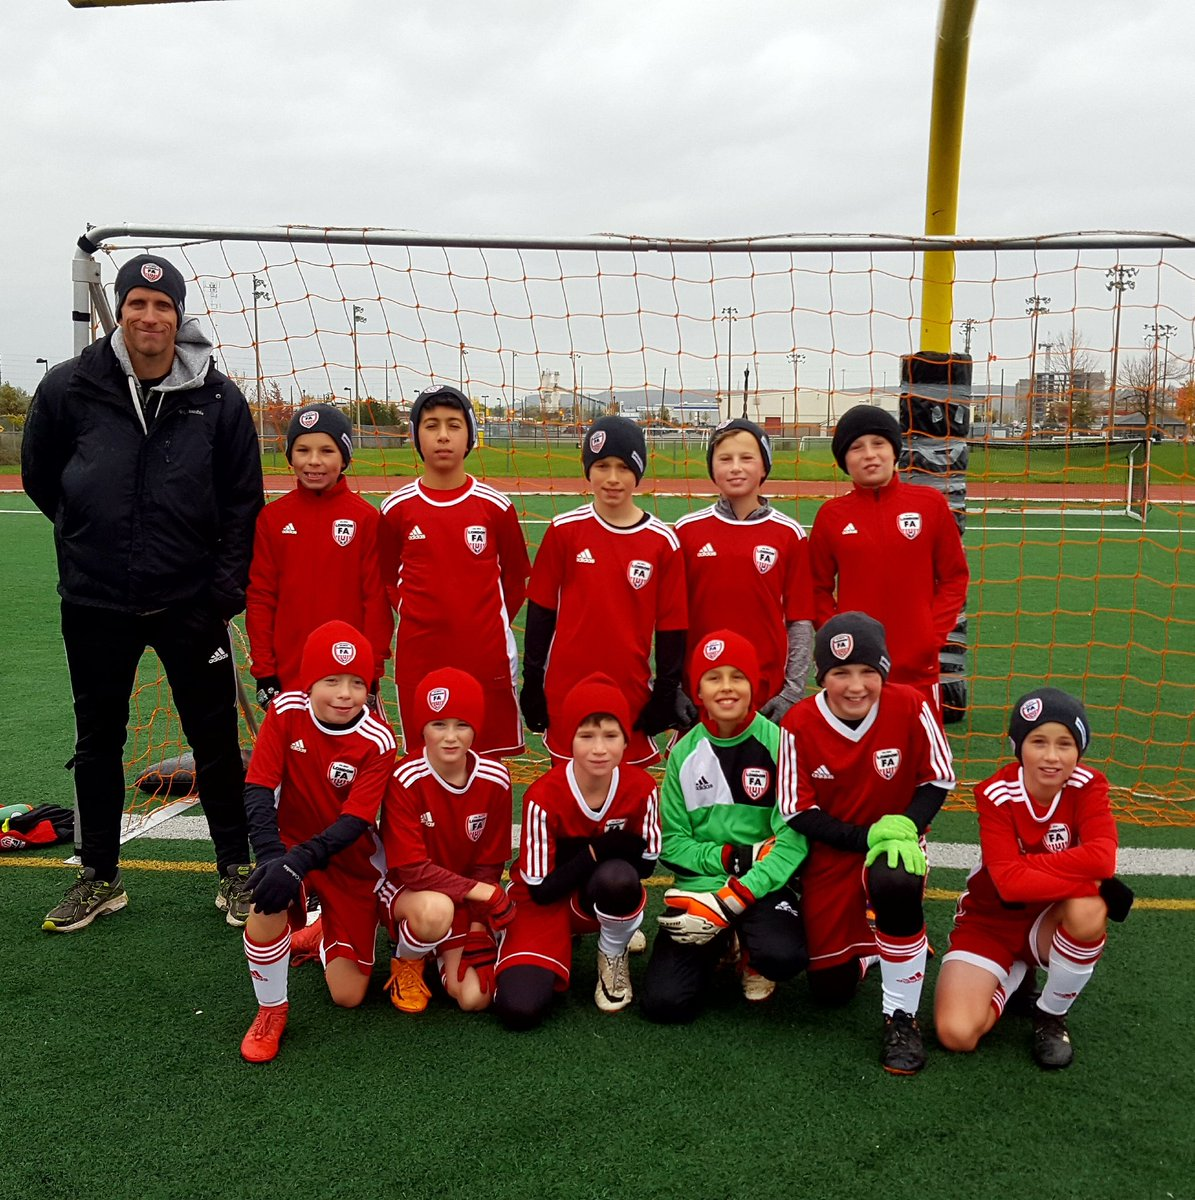 London FA 2007 boys finished their @SAACSoccer @OntarioIsSoccer #OASL outdoor season in Milton yesterday vs @PowerFCAcademy. Thank you coach Rick for a great #Soccer season, and for your years of dedication! #ThanksCoach #LdnOnt 👍⚽️🇨🇦